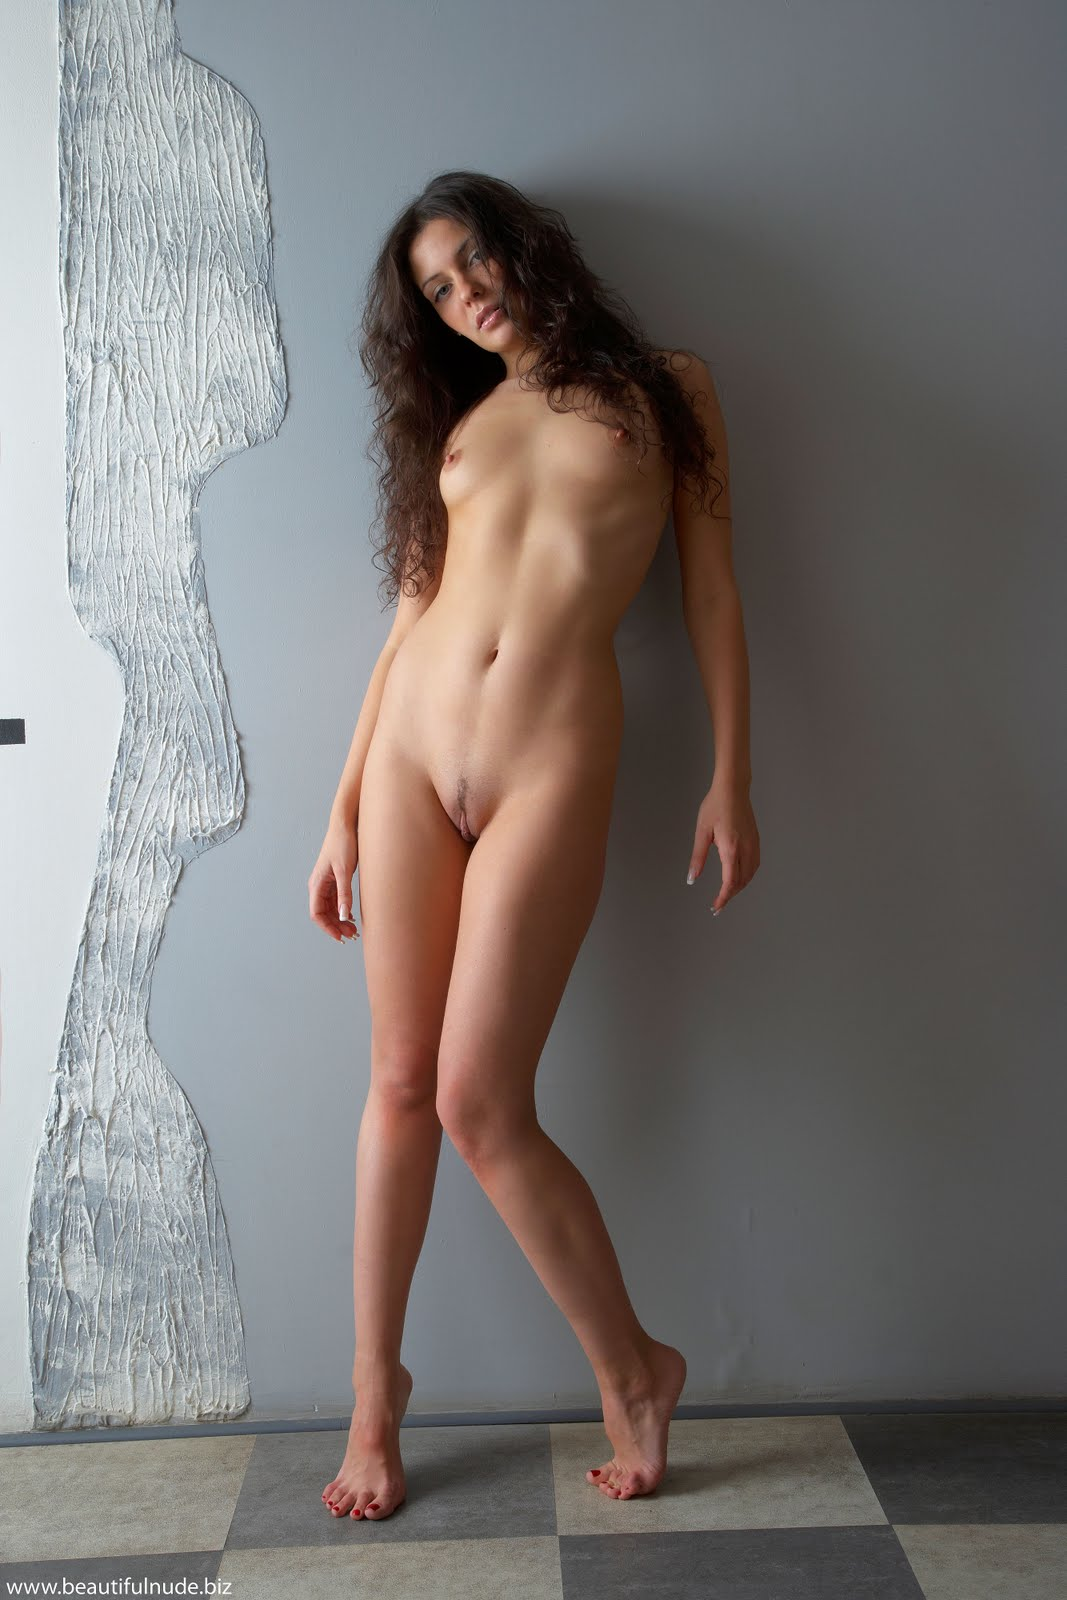 Barely legal nude girla